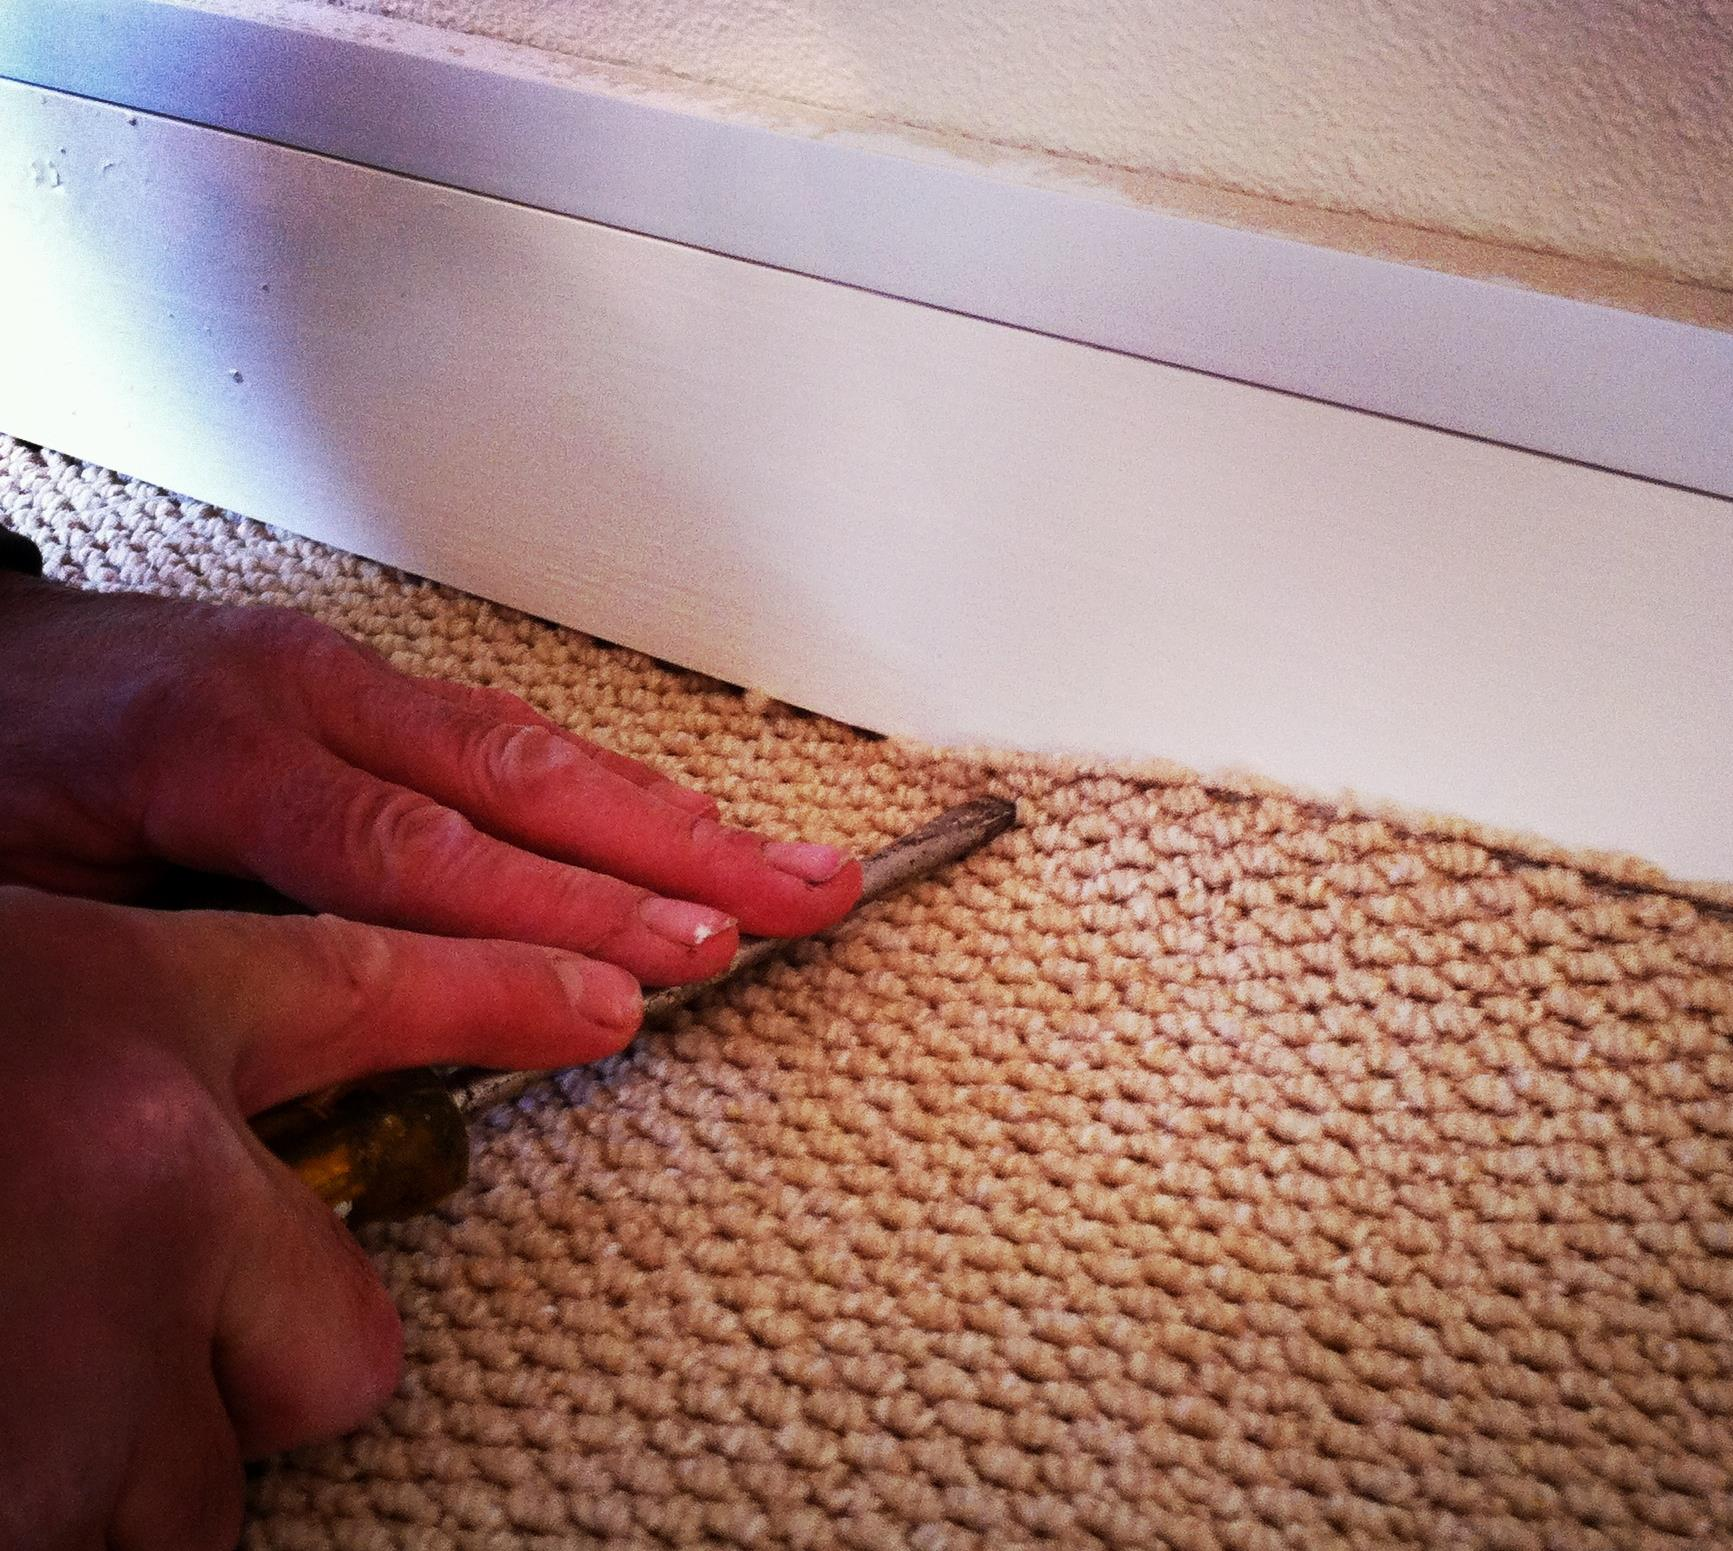 Trunking should be laid before carpet if possible